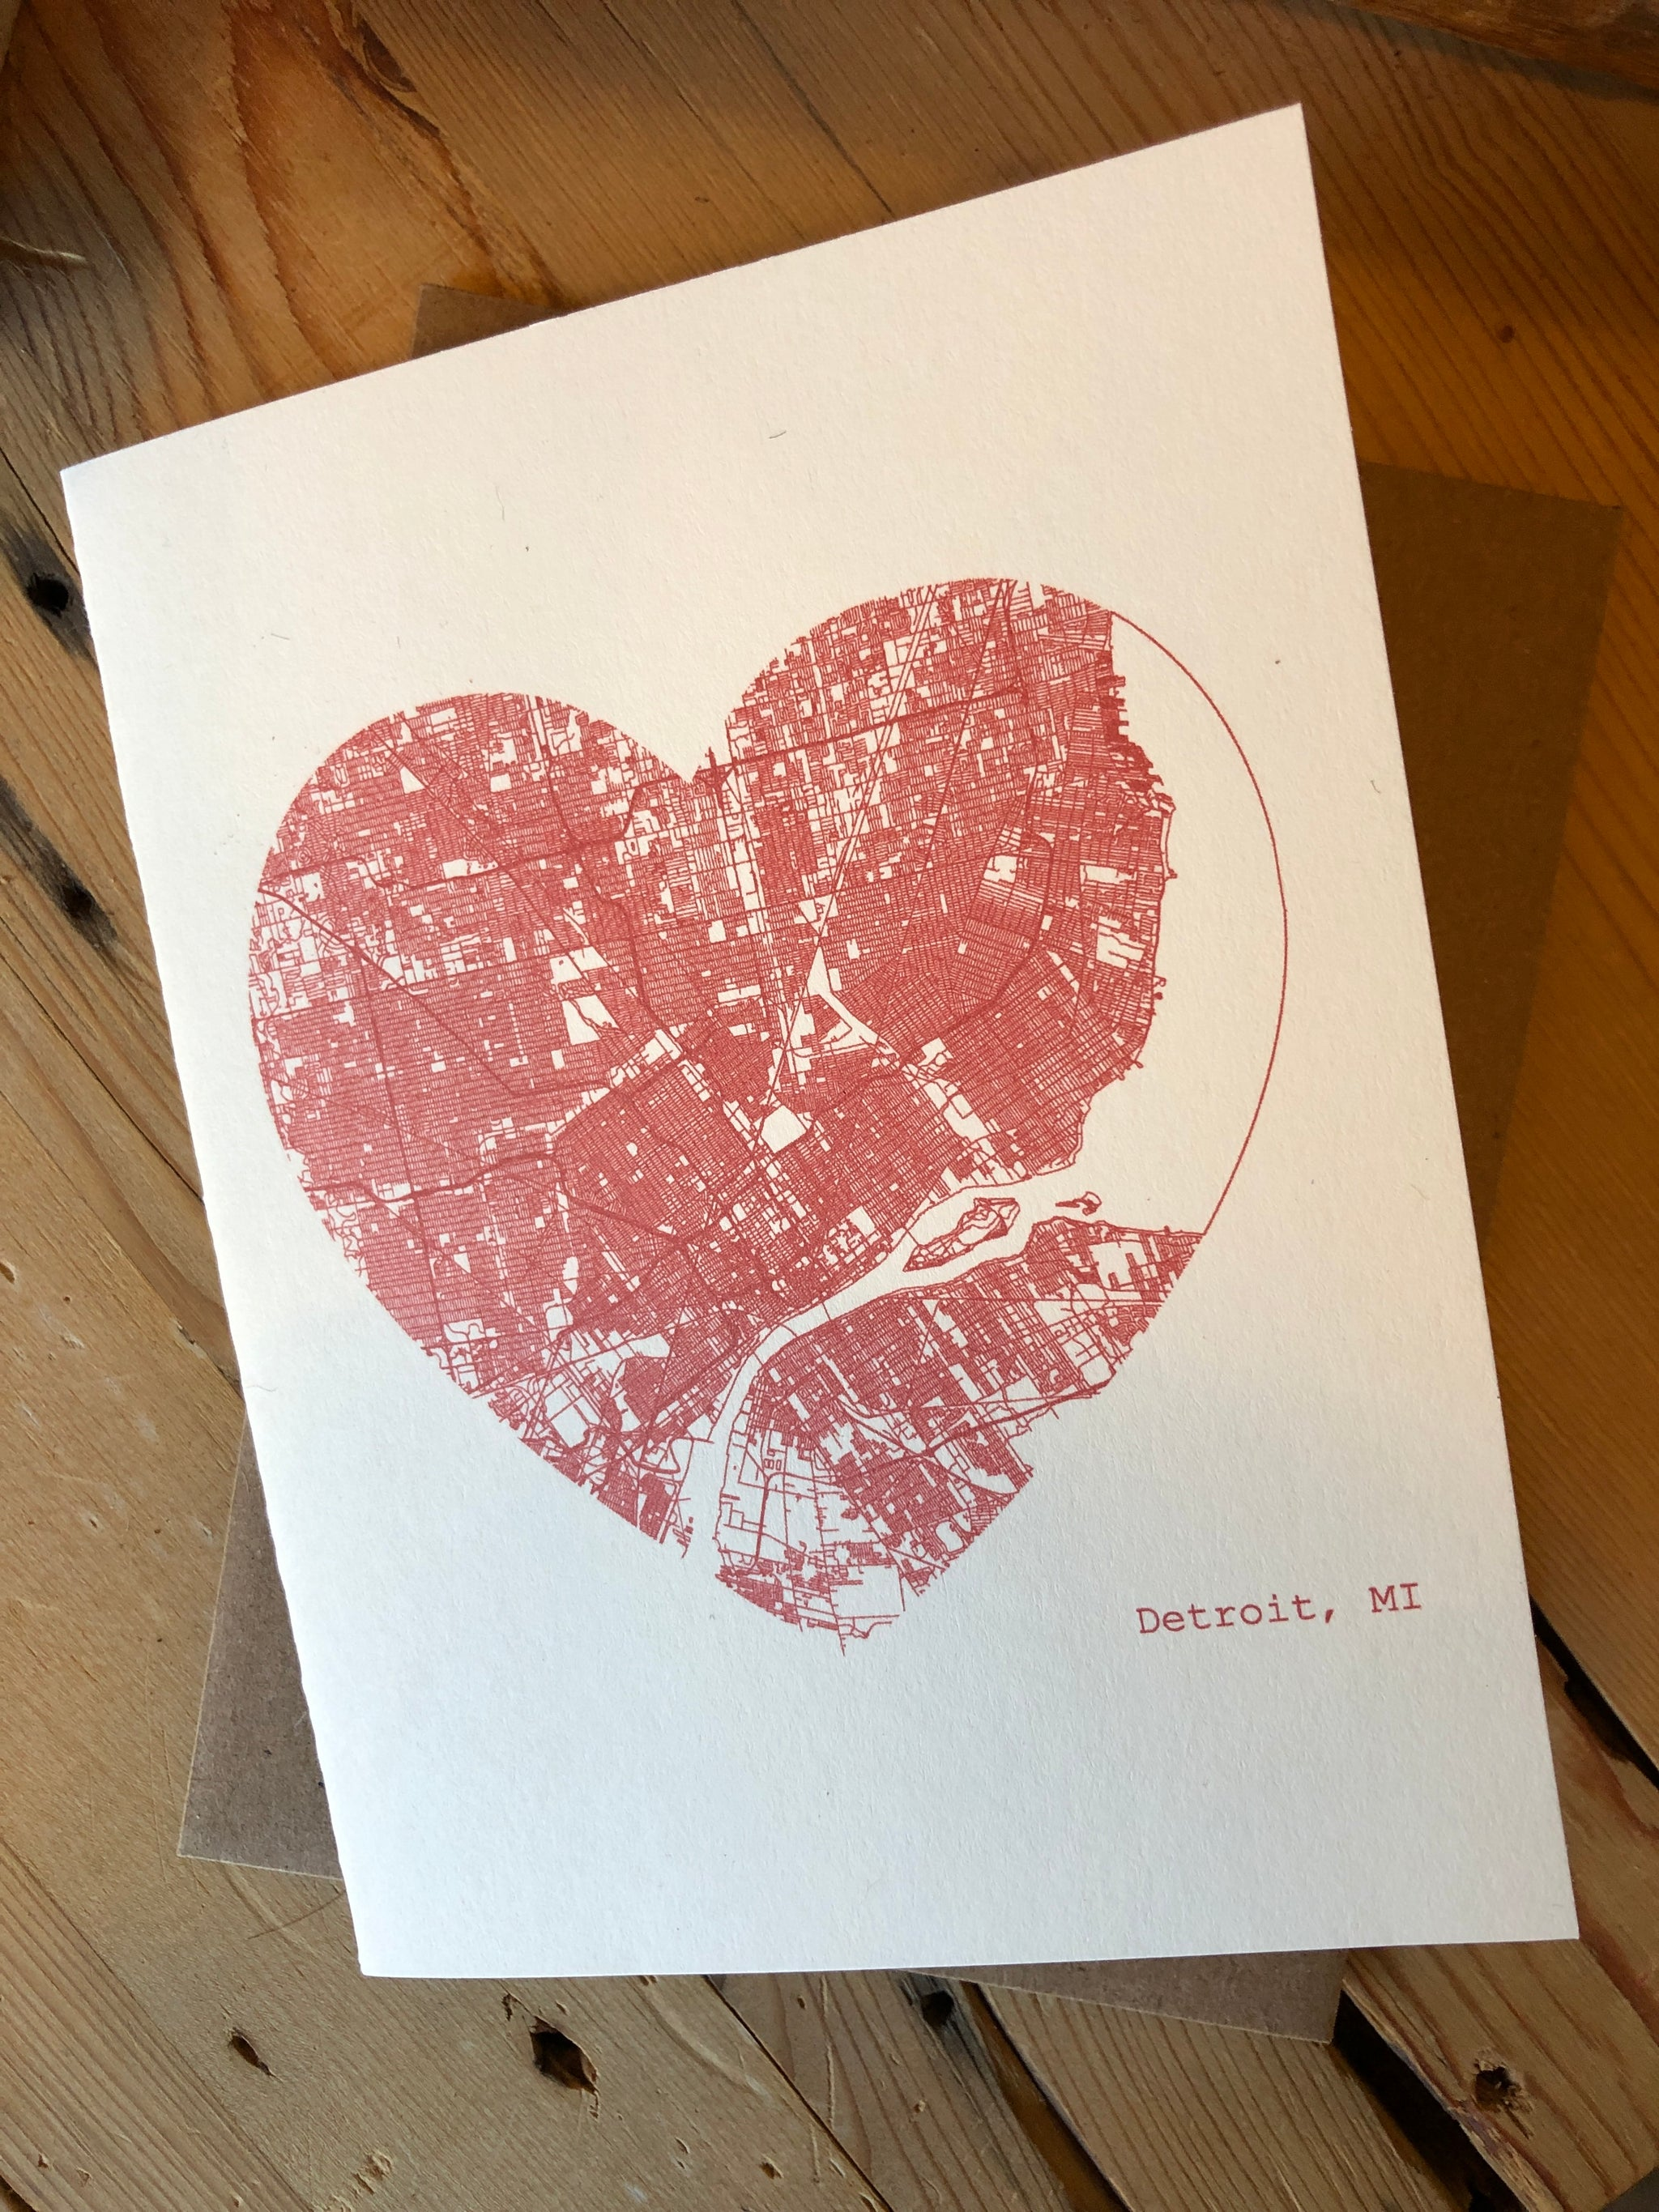 Detroit Michigan City Heart Map Art Print Card - Red - Pure Detroit